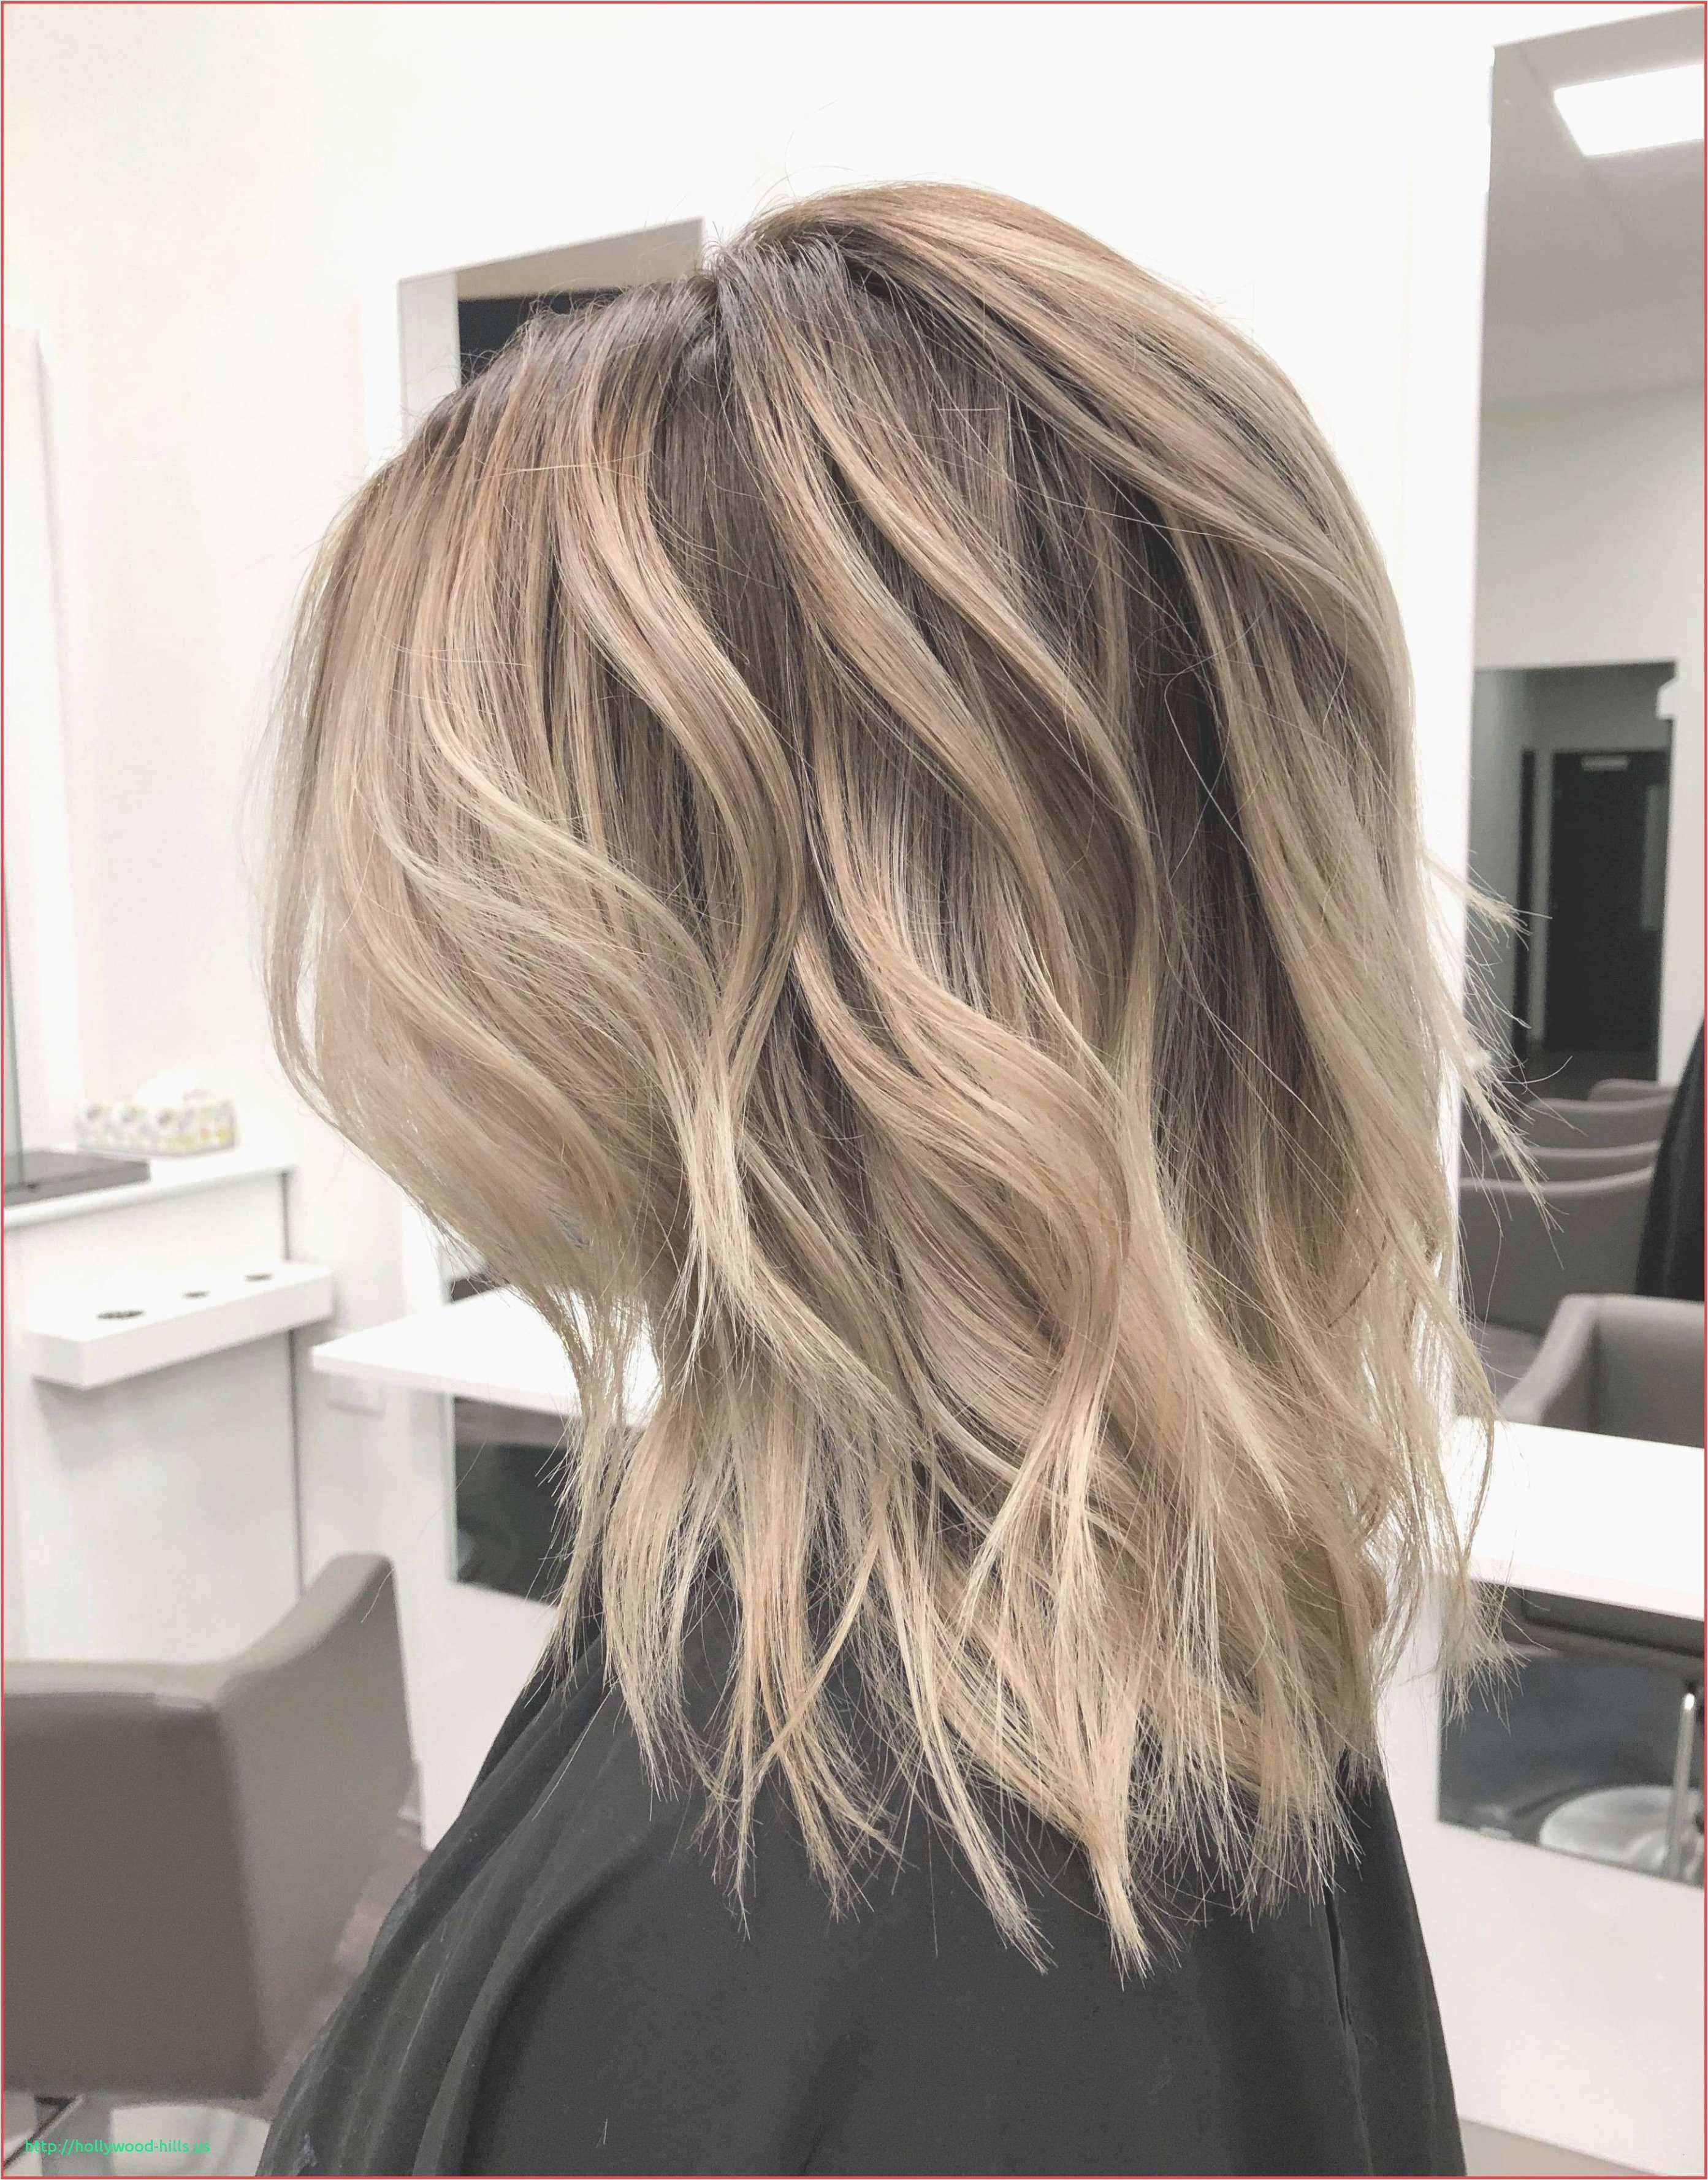 New Hairstyles for Women with Long Hair Fresh Up Styles for Long Hair for Weddings – My Cool Hairstyle